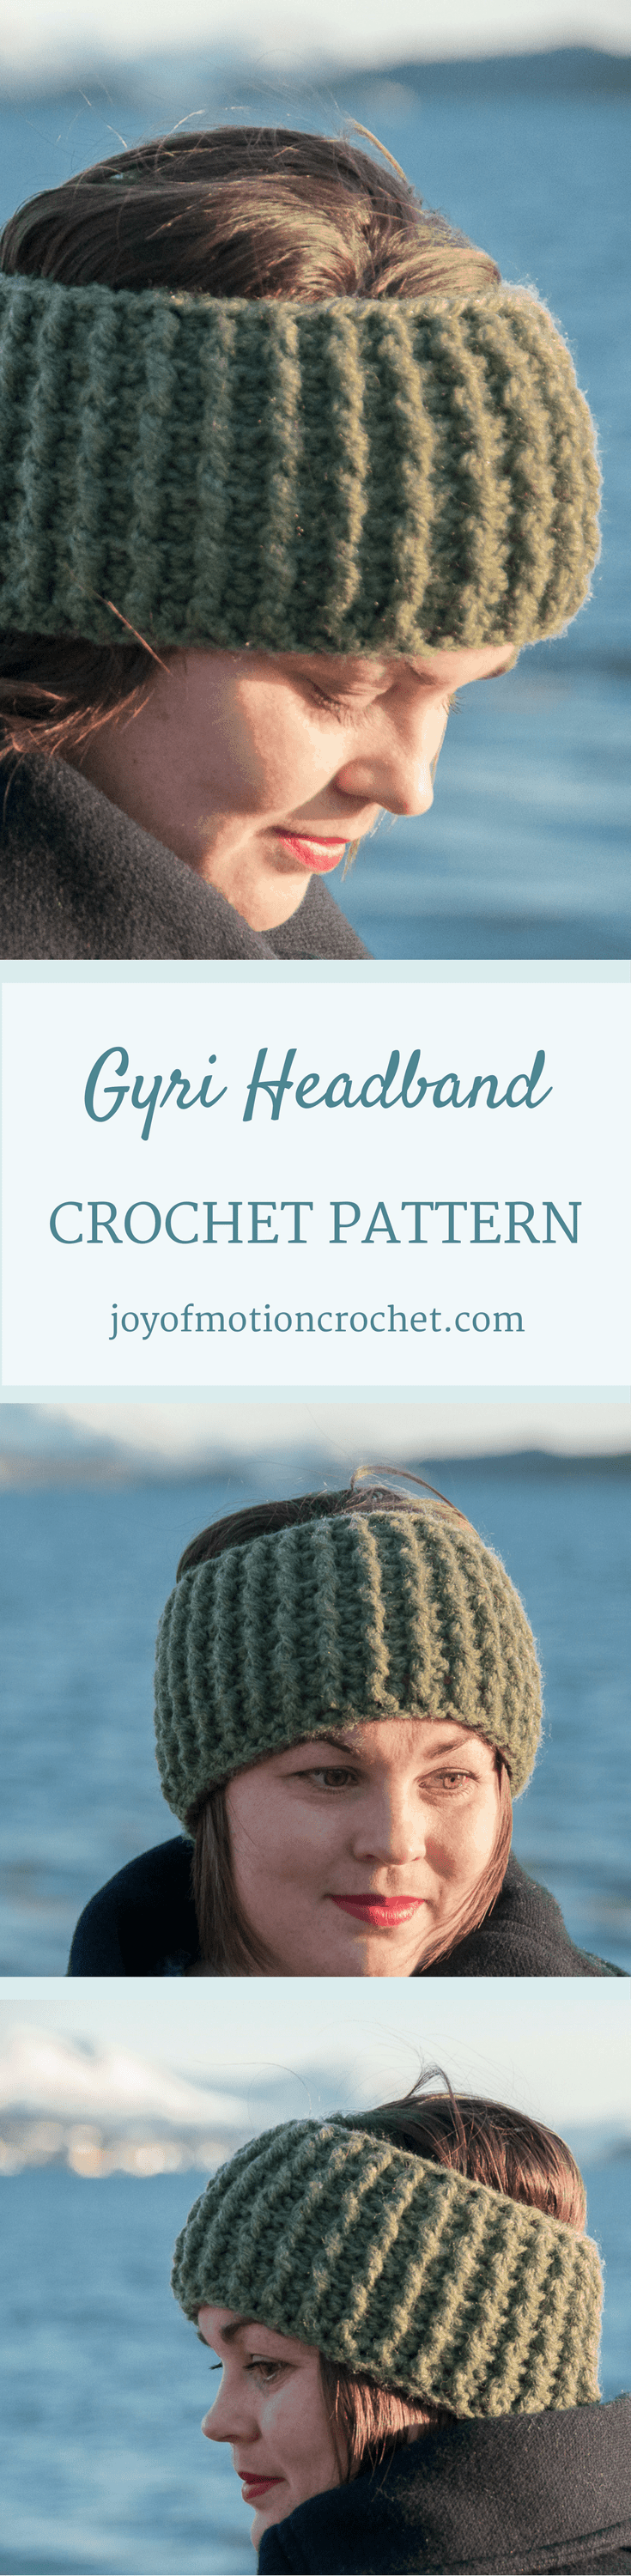 The Gyri Headband Crochet Pattern Design. Headband crochet pattern. Easy crochet pattern. Quick crochet pattern. Ear warmer crochet pattern. #crochetpattern #headbandcrochetpattern #crochetheadband #crochetearwarmer #crochet